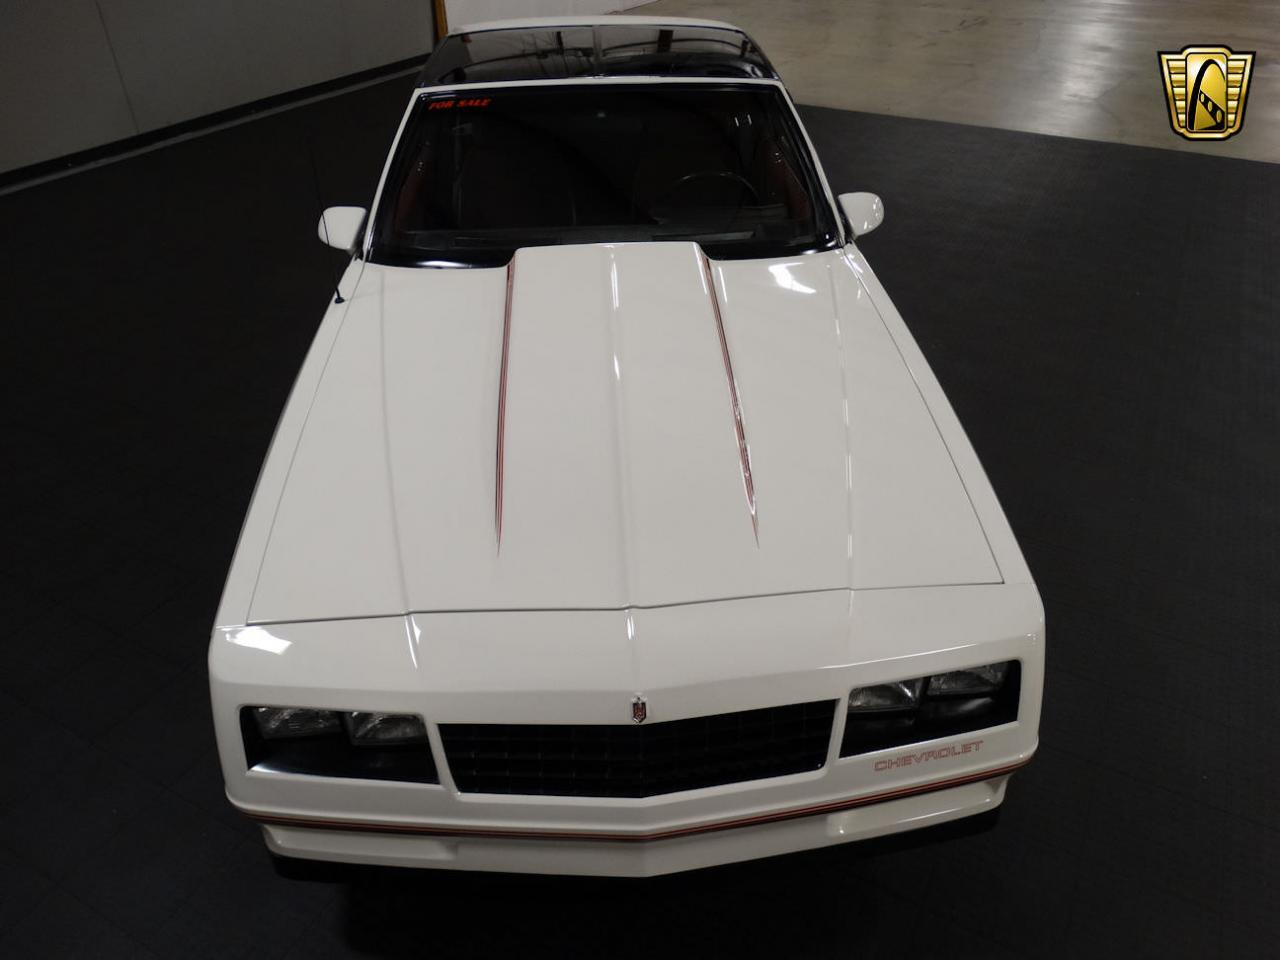 Large Picture of '87 Chevrolet Monte Carlo located in Memphis Indiana - $39,995.00 Offered by Gateway Classic Cars - Louisville - LCNU